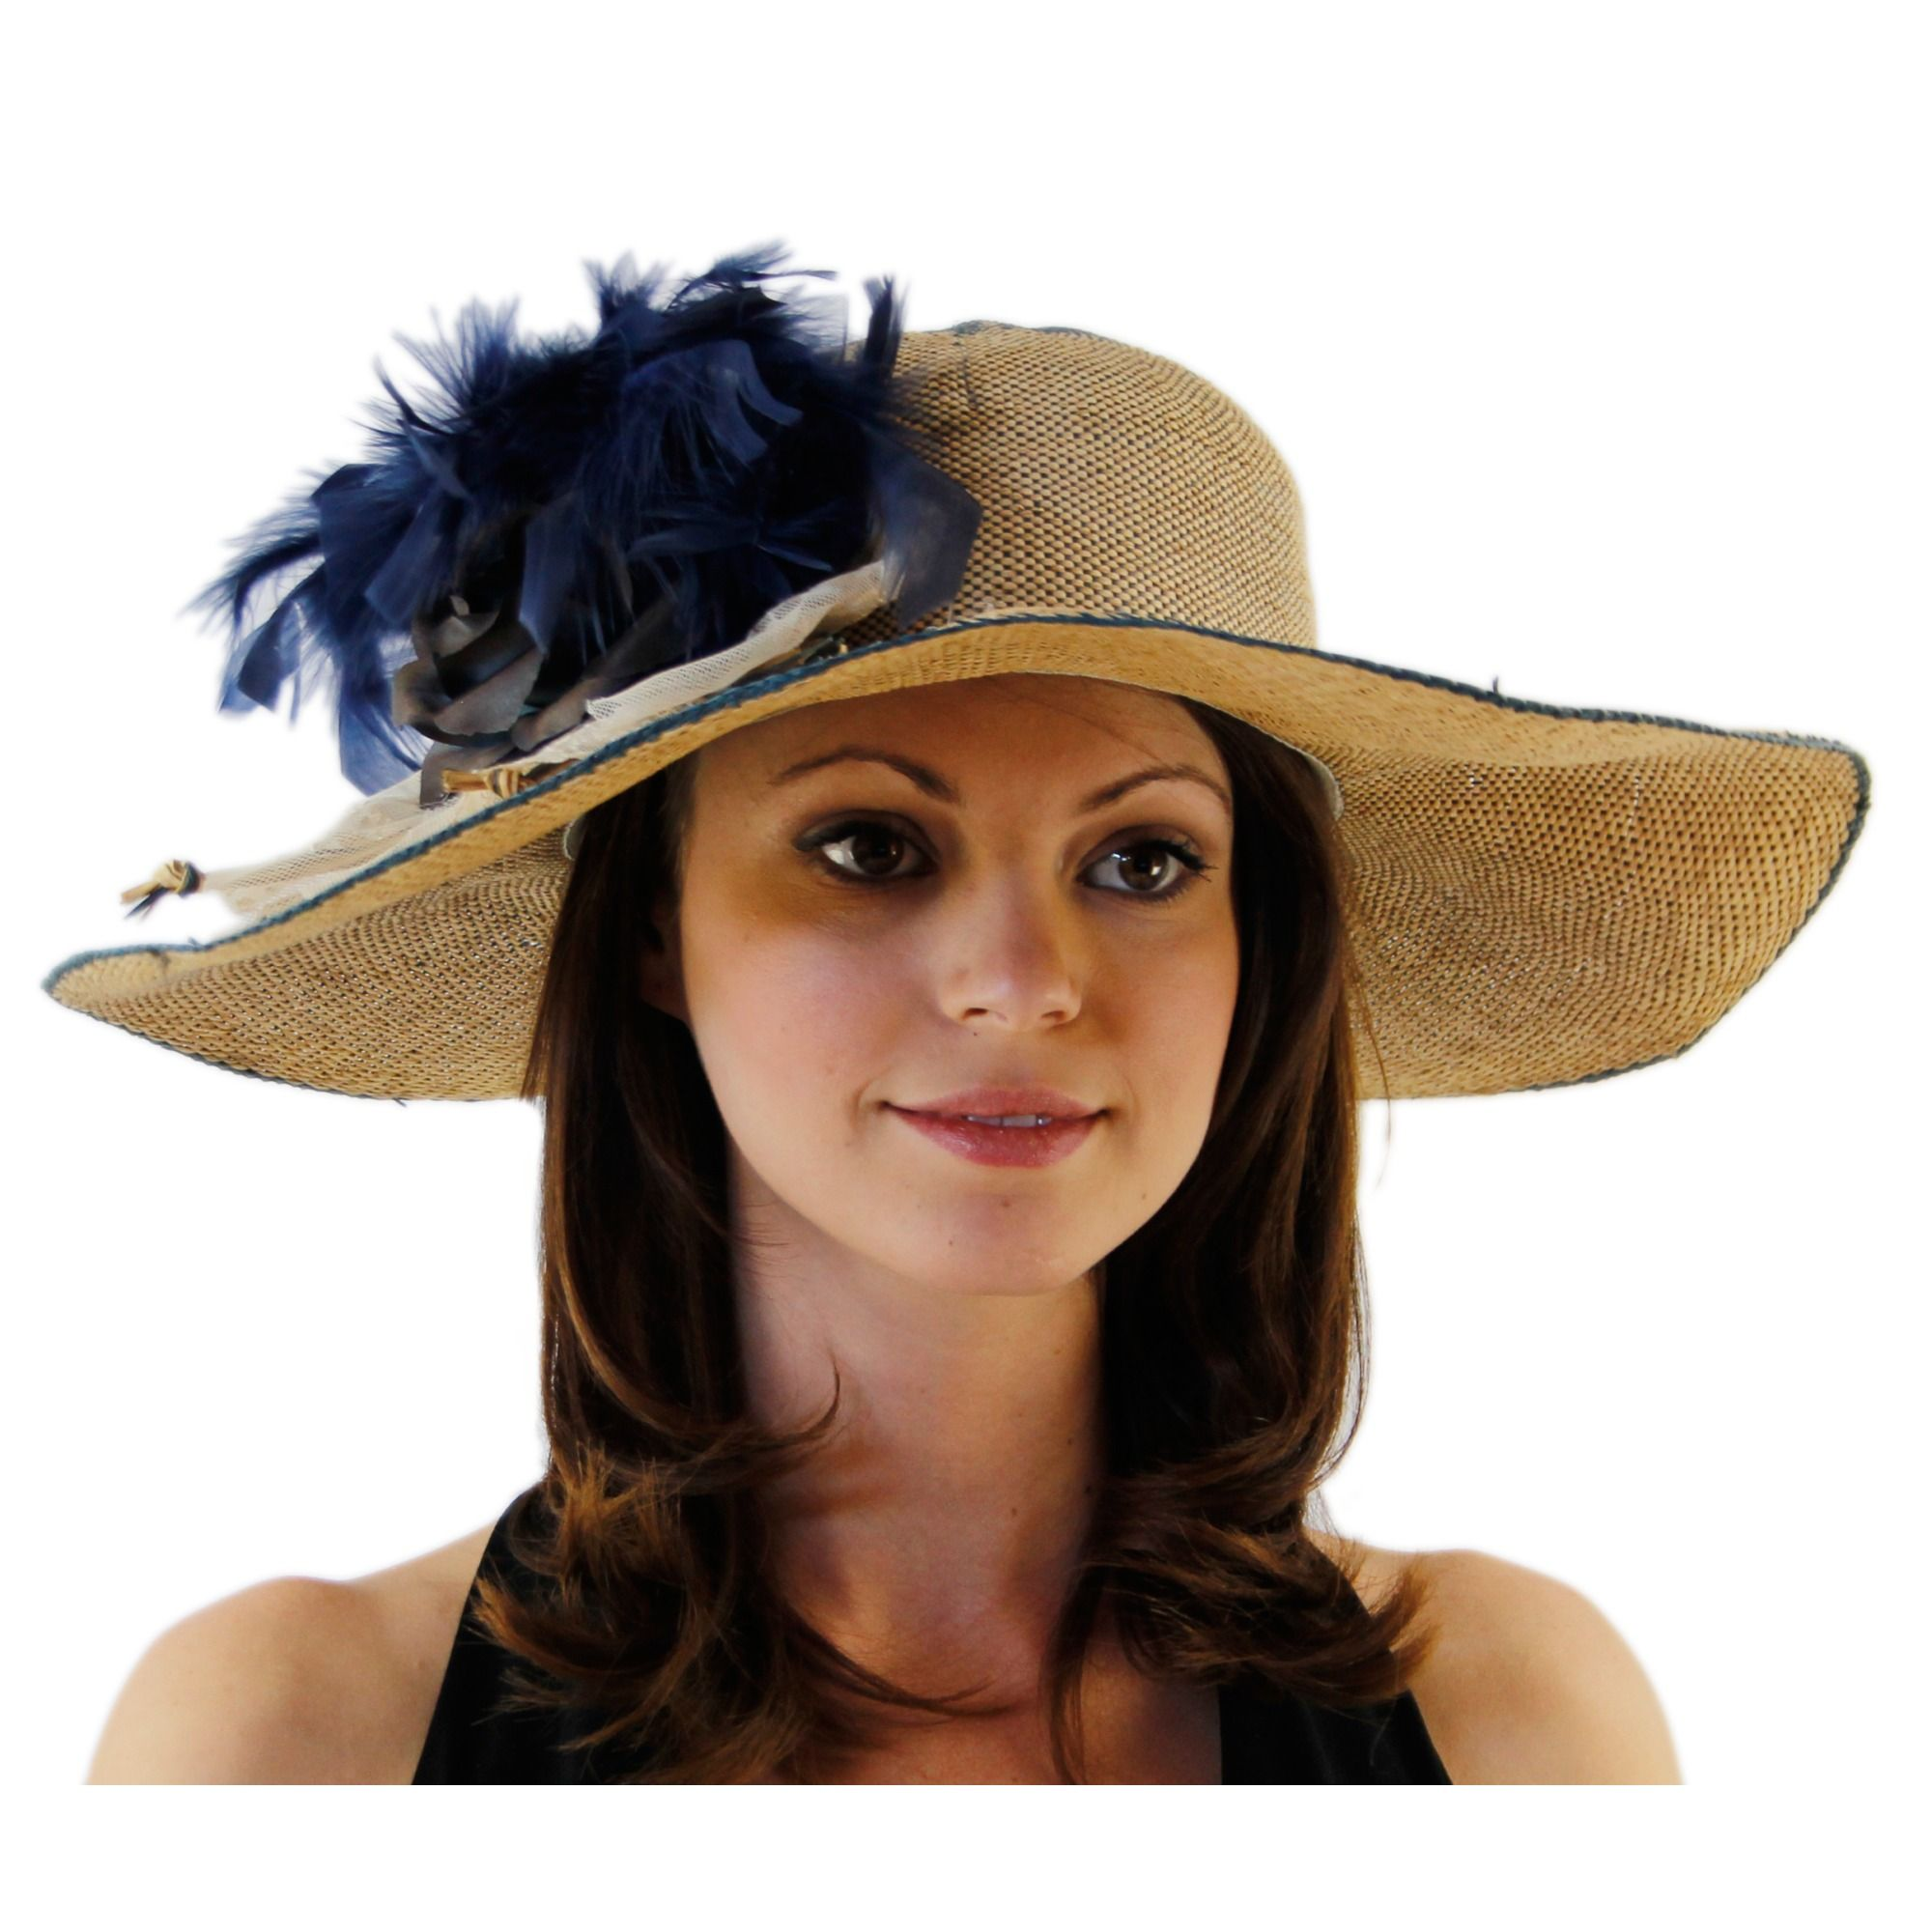 Deep Blue Sun Chic Two Toned Ladies Derby Hat with Rustic Lace $55